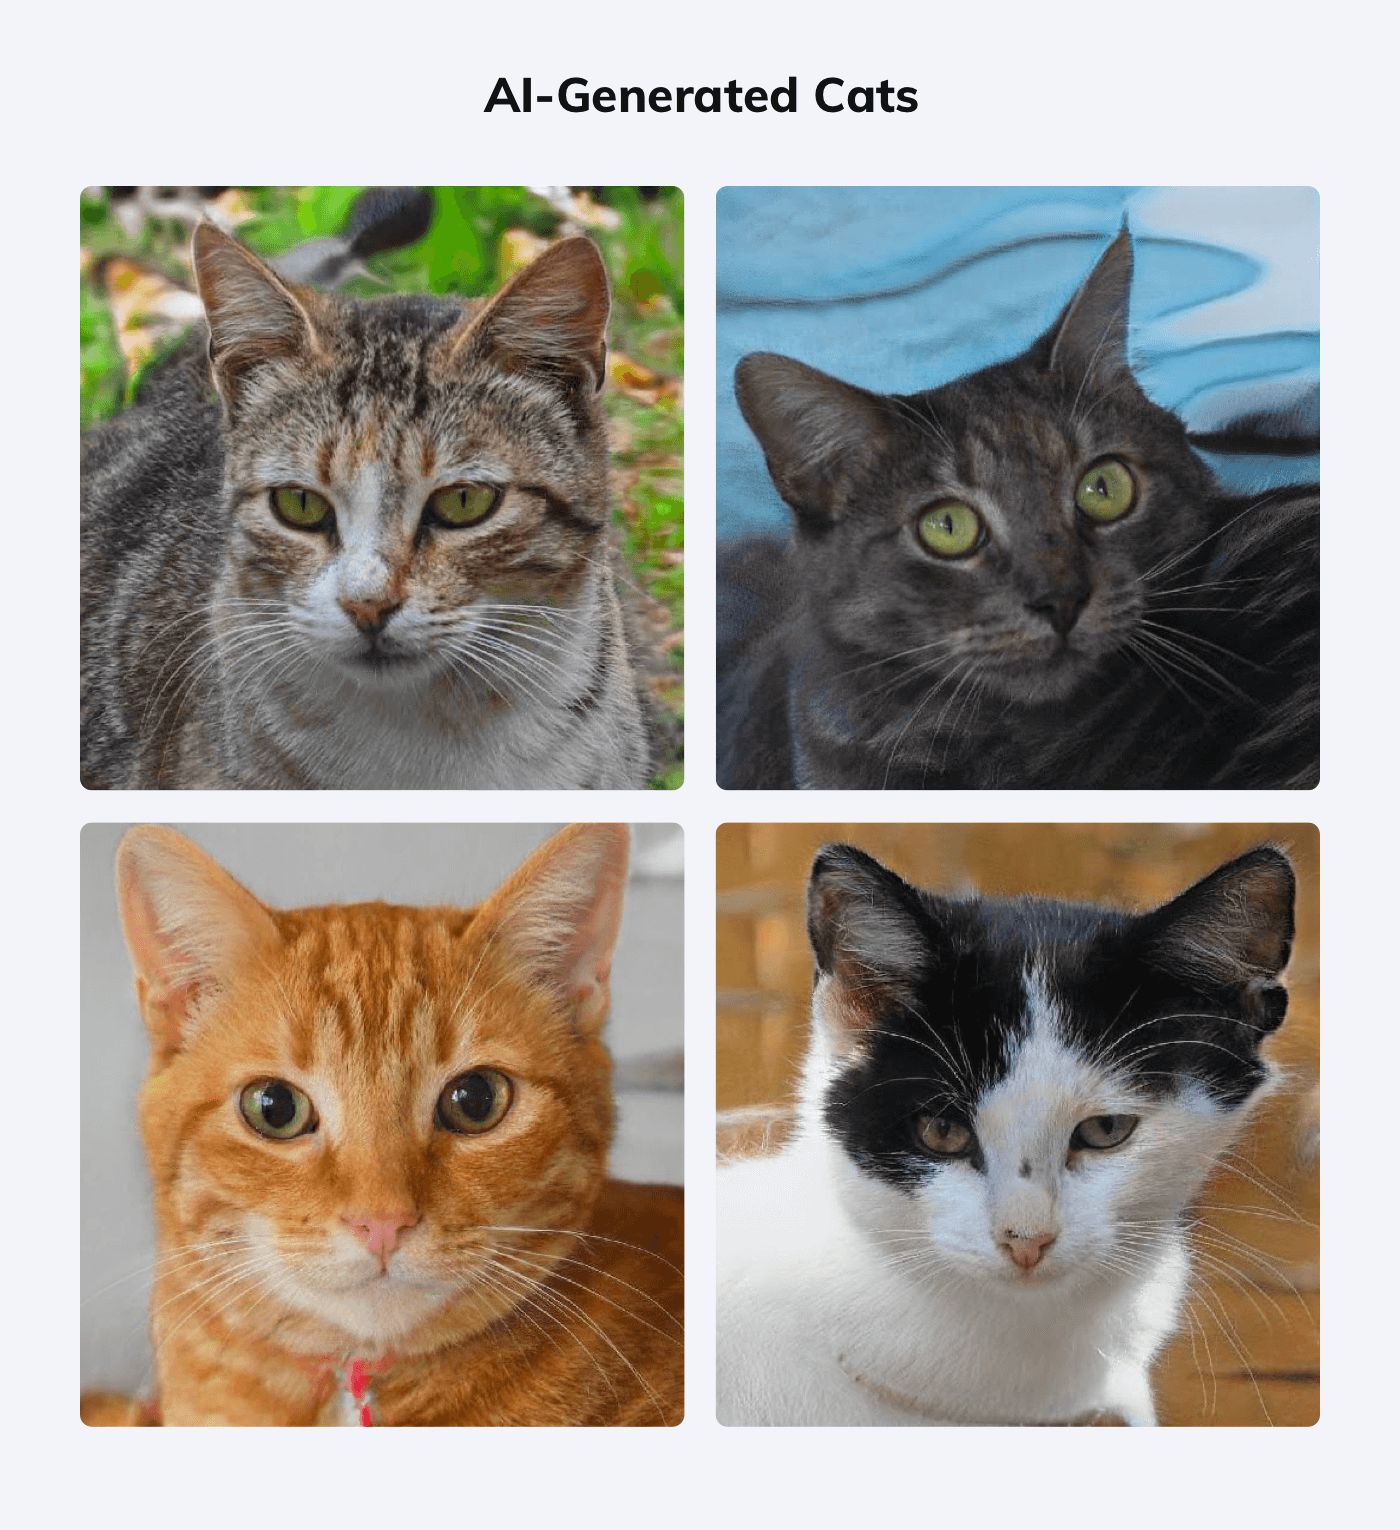 Some examples of AI-generated cats